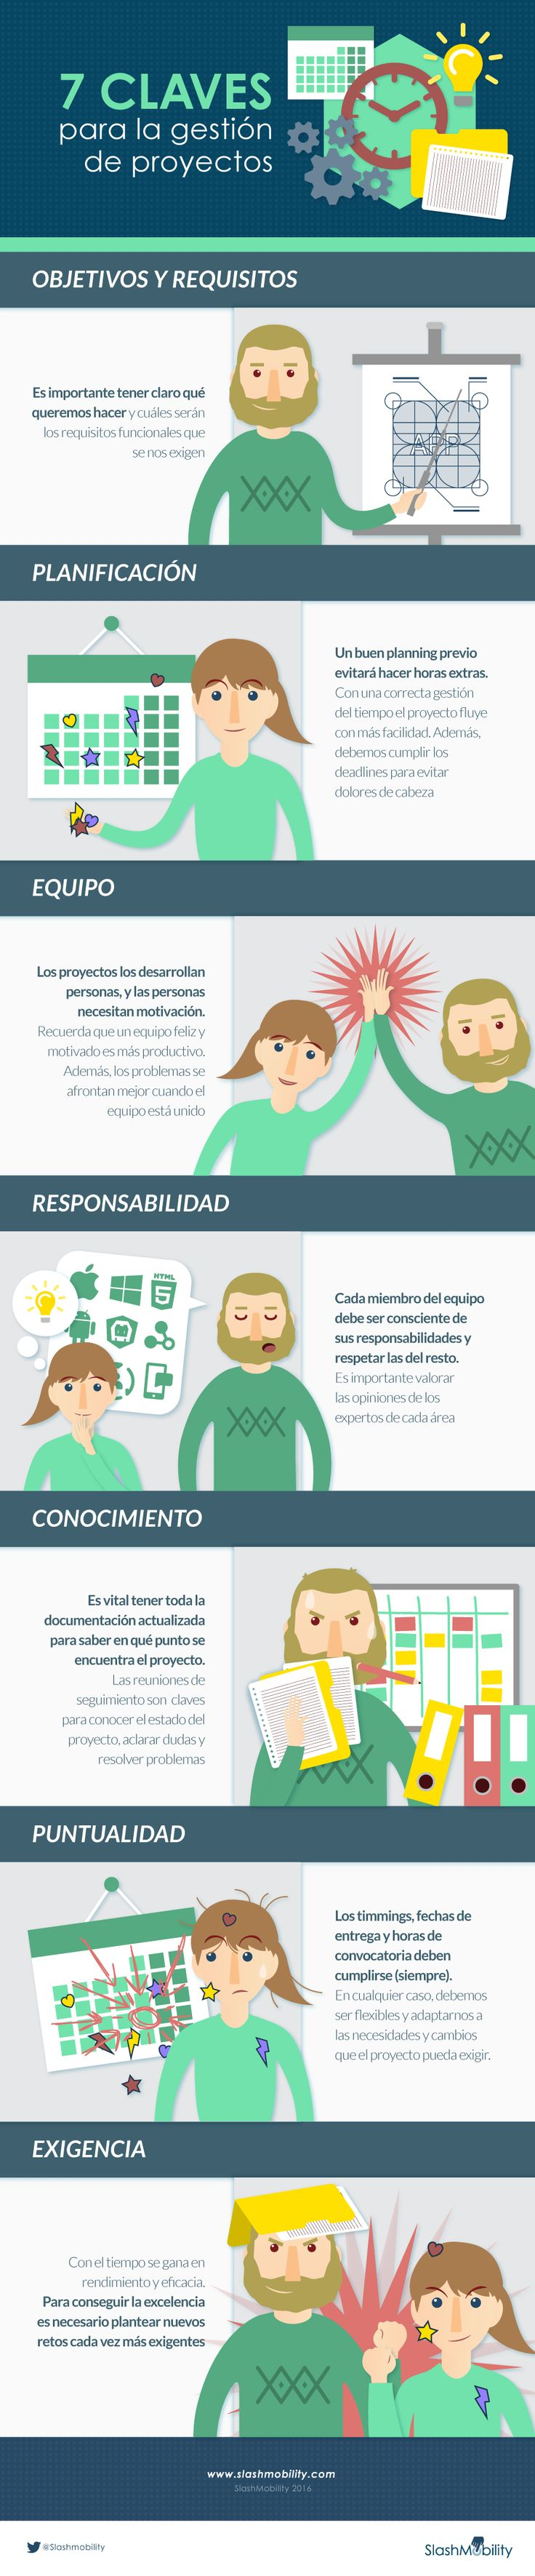 7-claves-gestion-proyectos-infografia.png (900×4331)